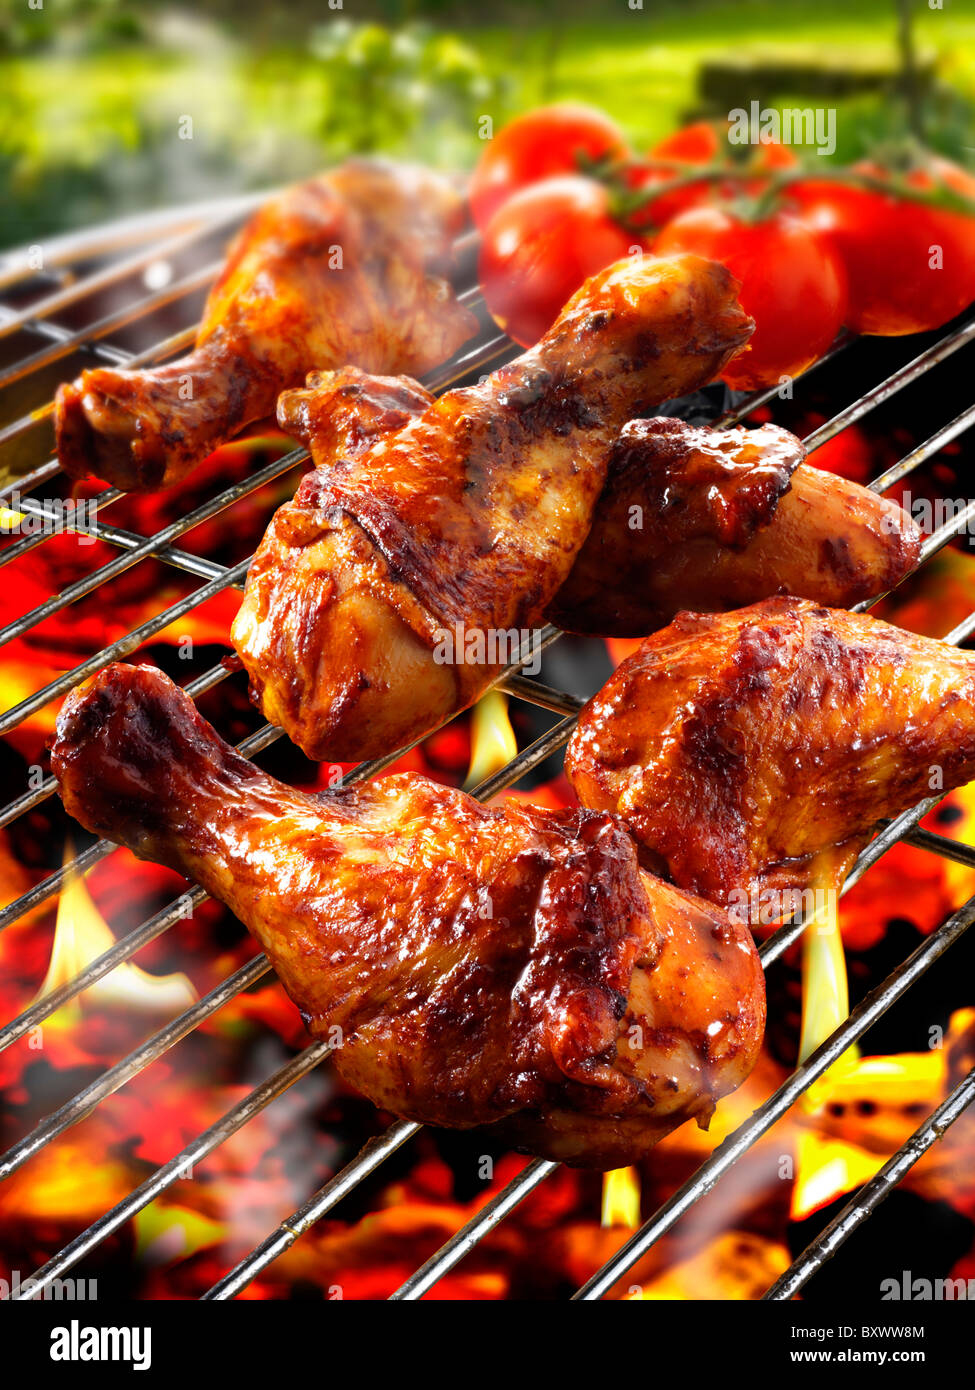 Barbecue chicken legs & thighs on a BBQ grill Stock Photo, Royalty ...